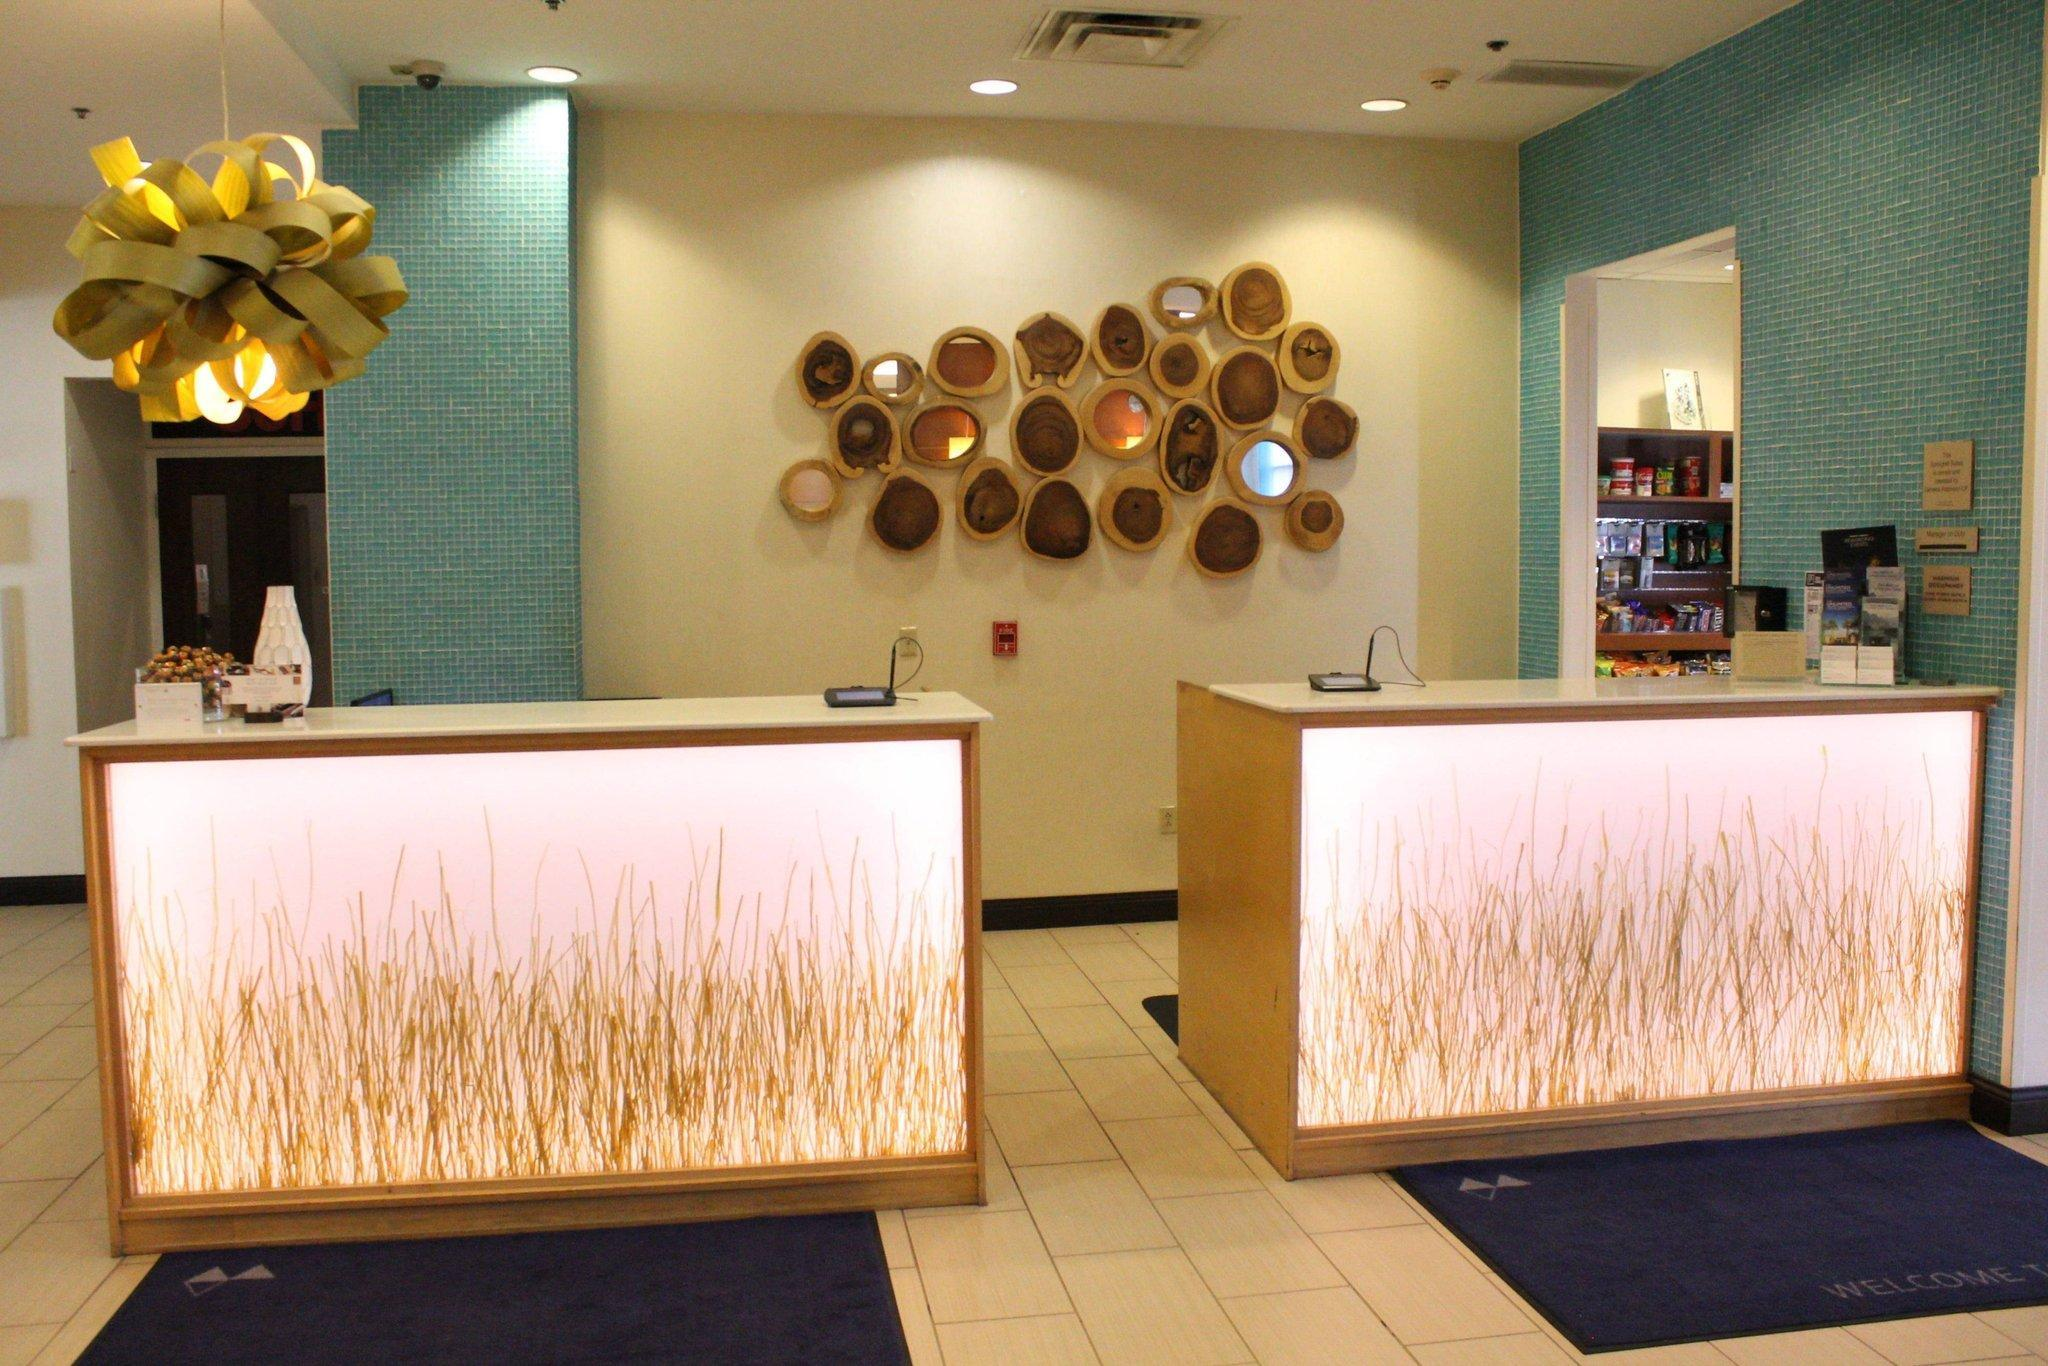 SpringHill Suites Pittsburgh North Shore, Allegheny